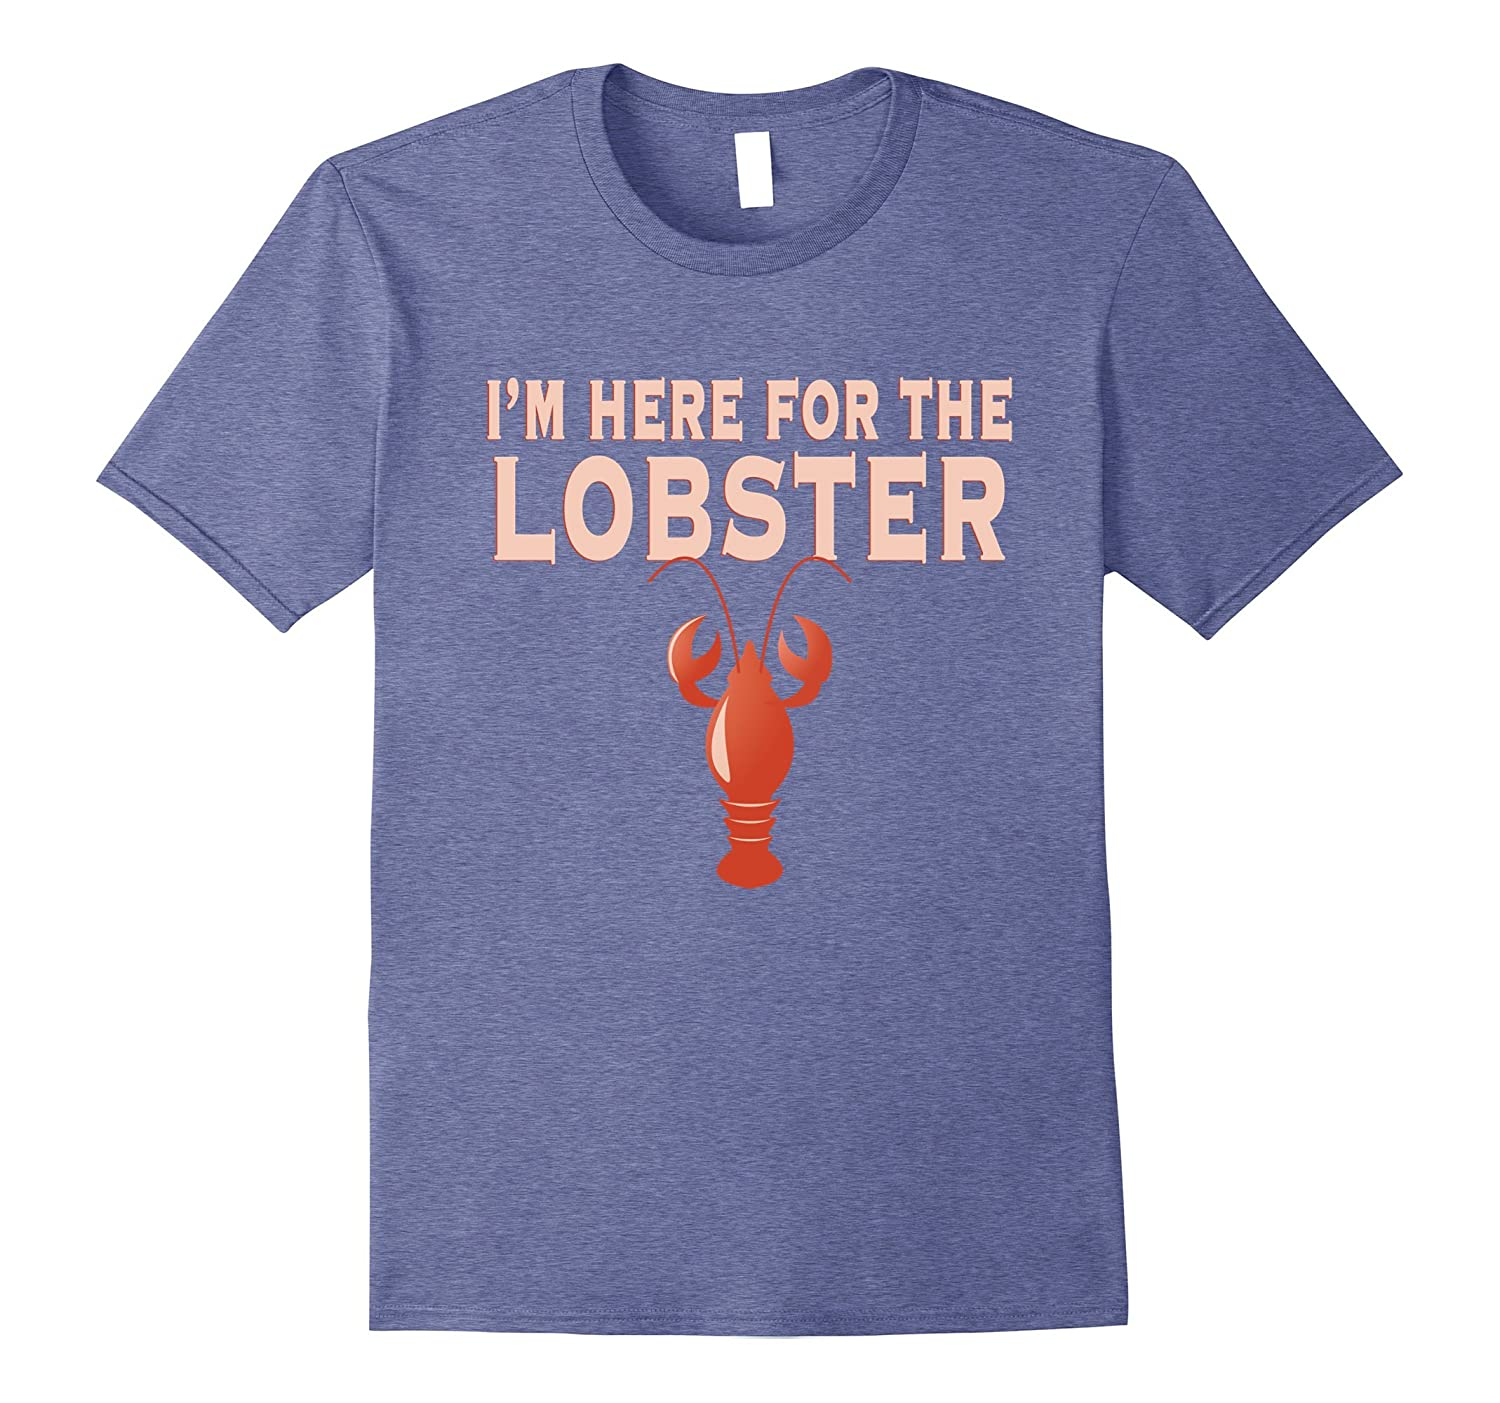 Here for the Lobster T Shirt Seafood-Art